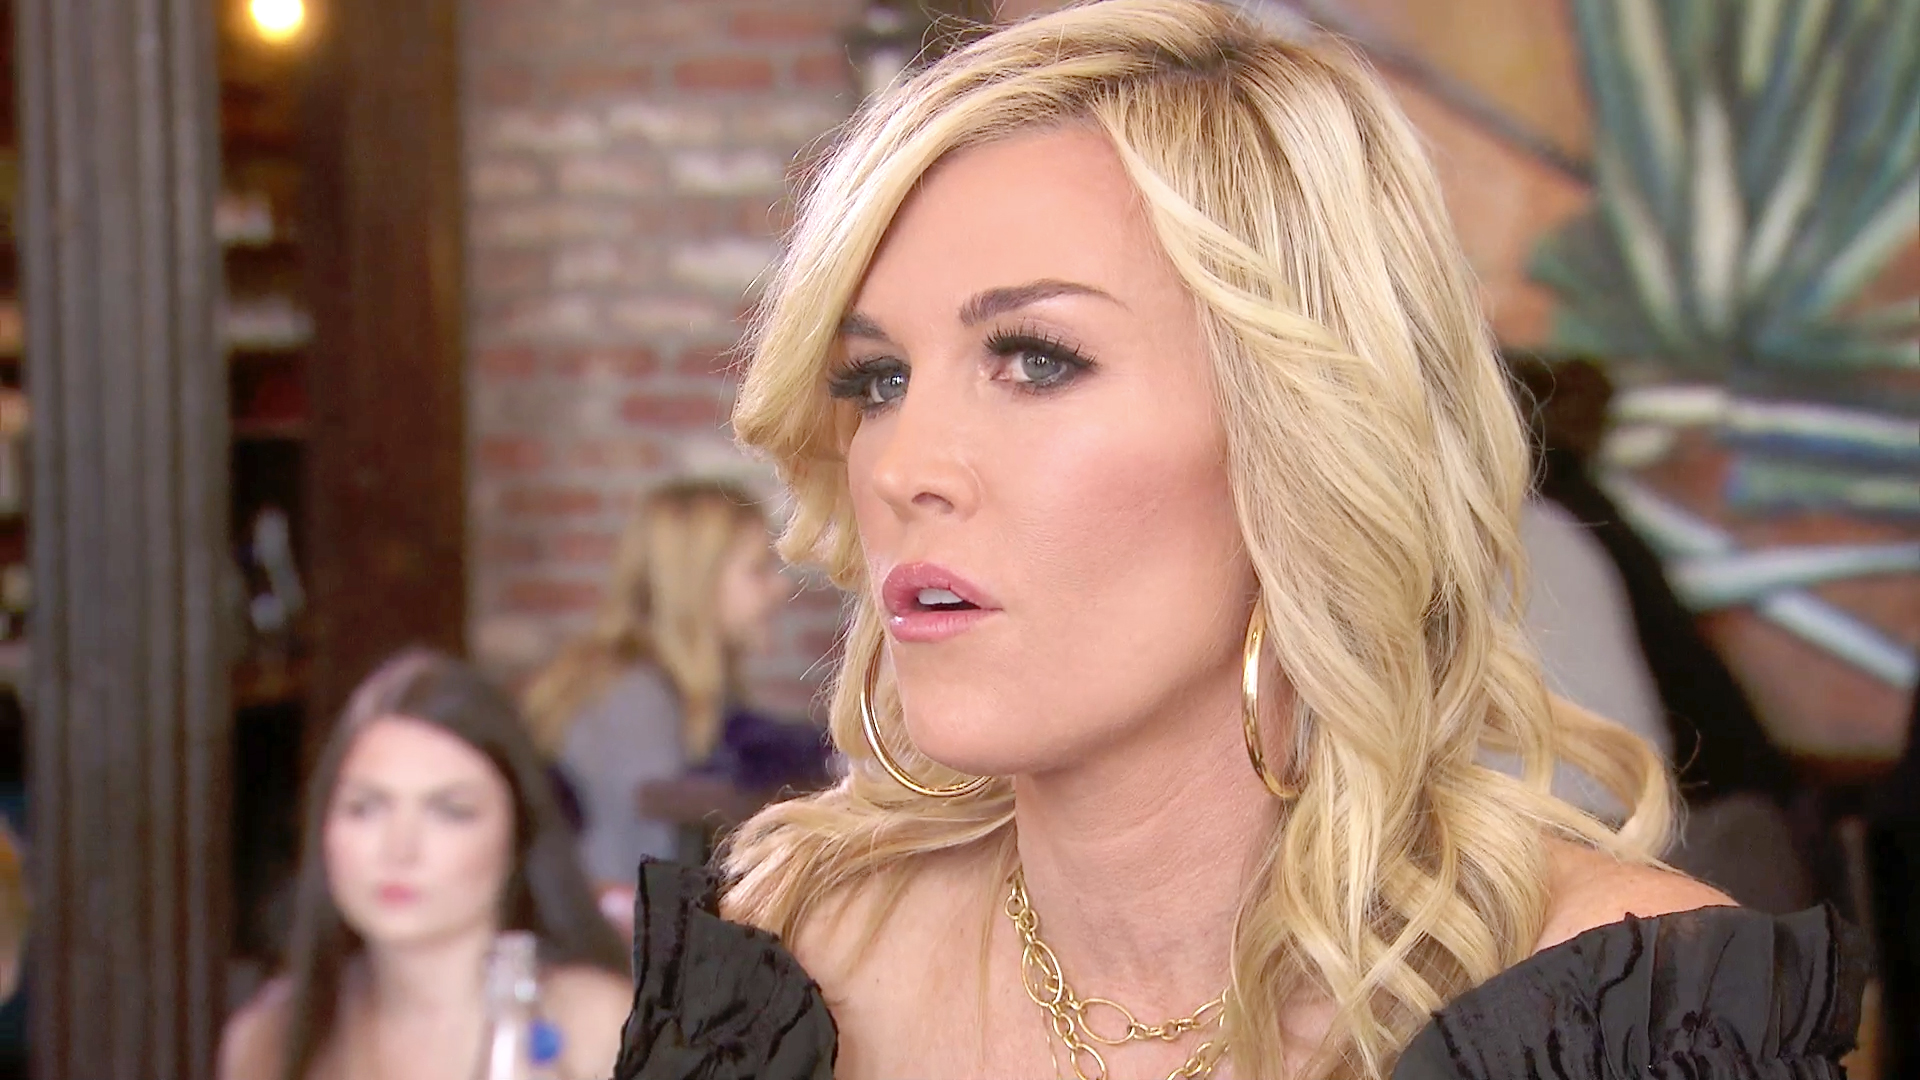 Does Tinsley Mortimer Really Want to Have Children?